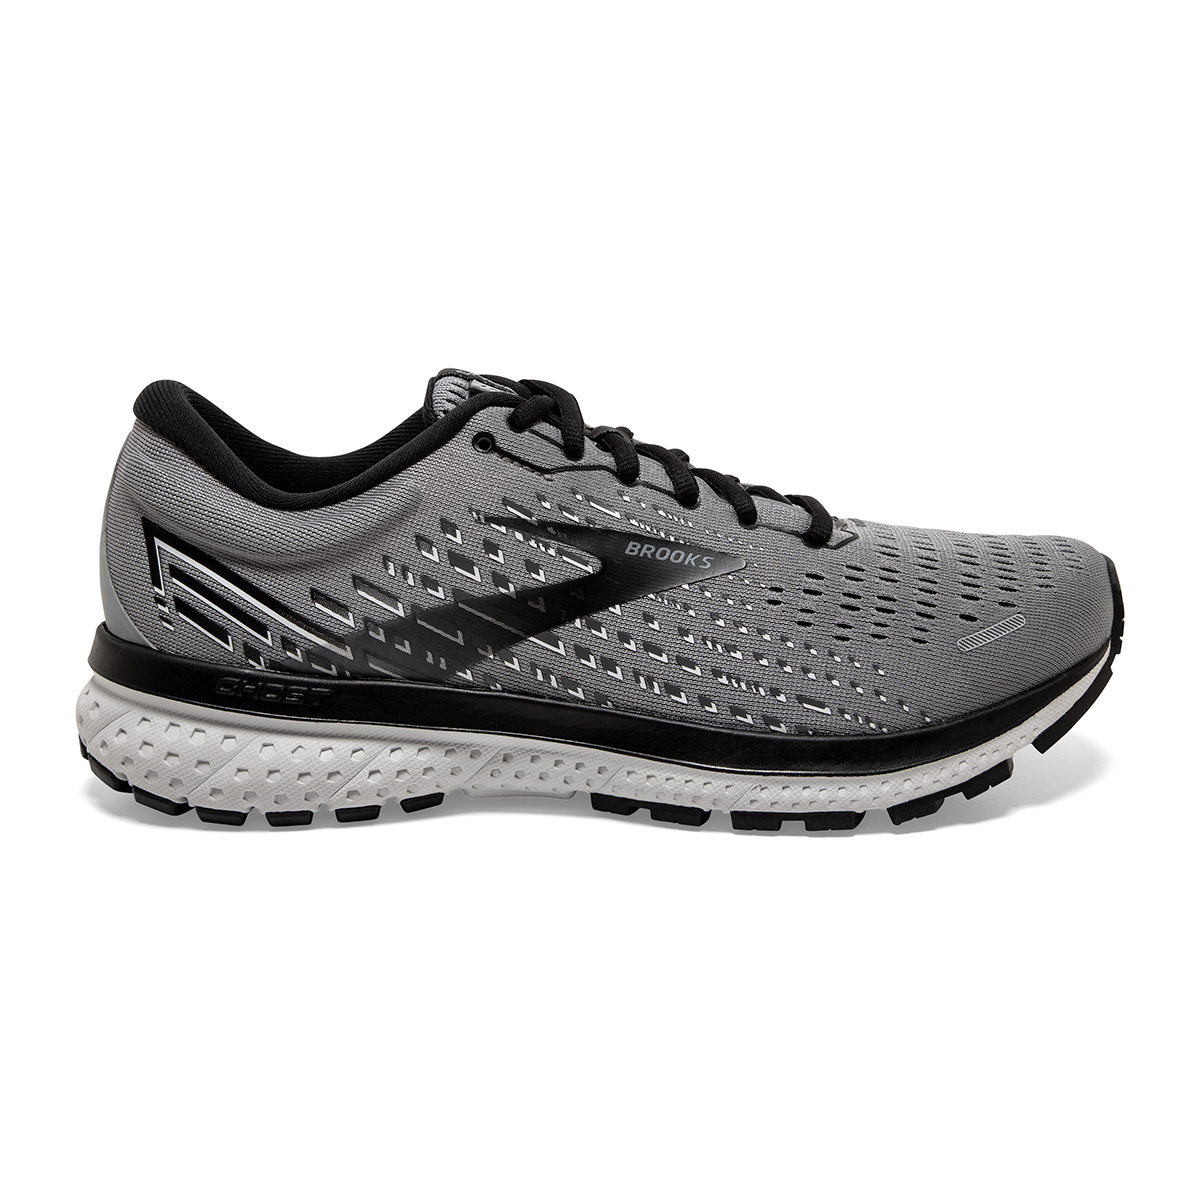 Men's Brooks Ghost 13 Running Shoe - Color: Primer Grey - Size: 7 - Width: Regular, Primer Grey, large, image 1